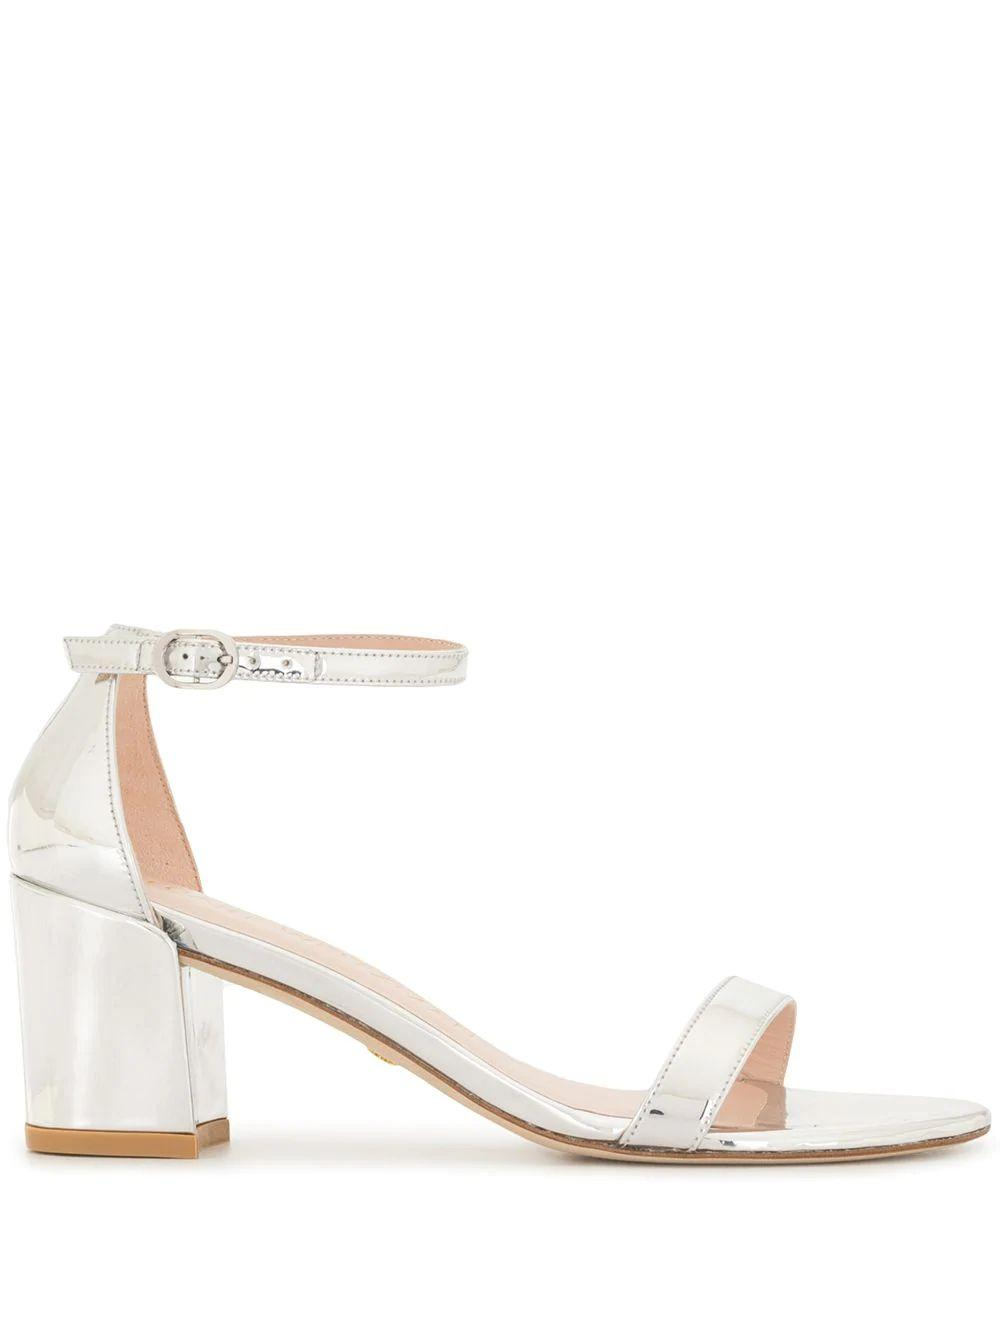 Simple Metallic Block Heel Sandal